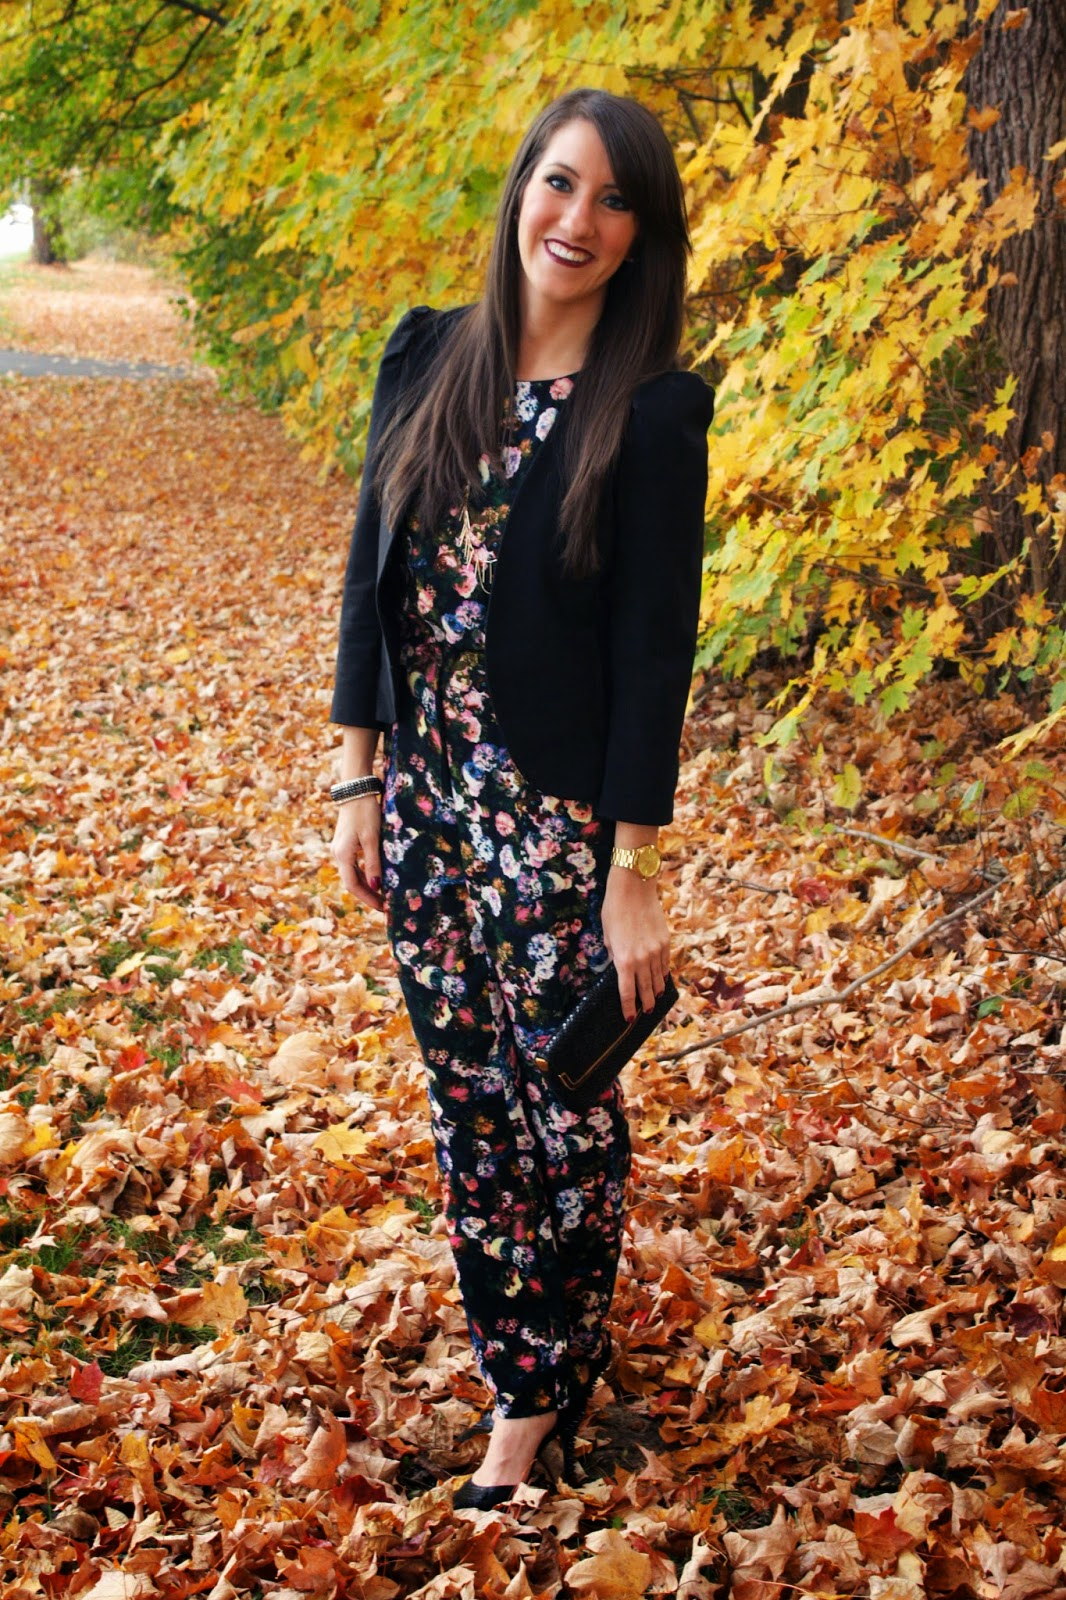 http://brittwilt.blogspot.com/2014/10/fall-for-florals.html